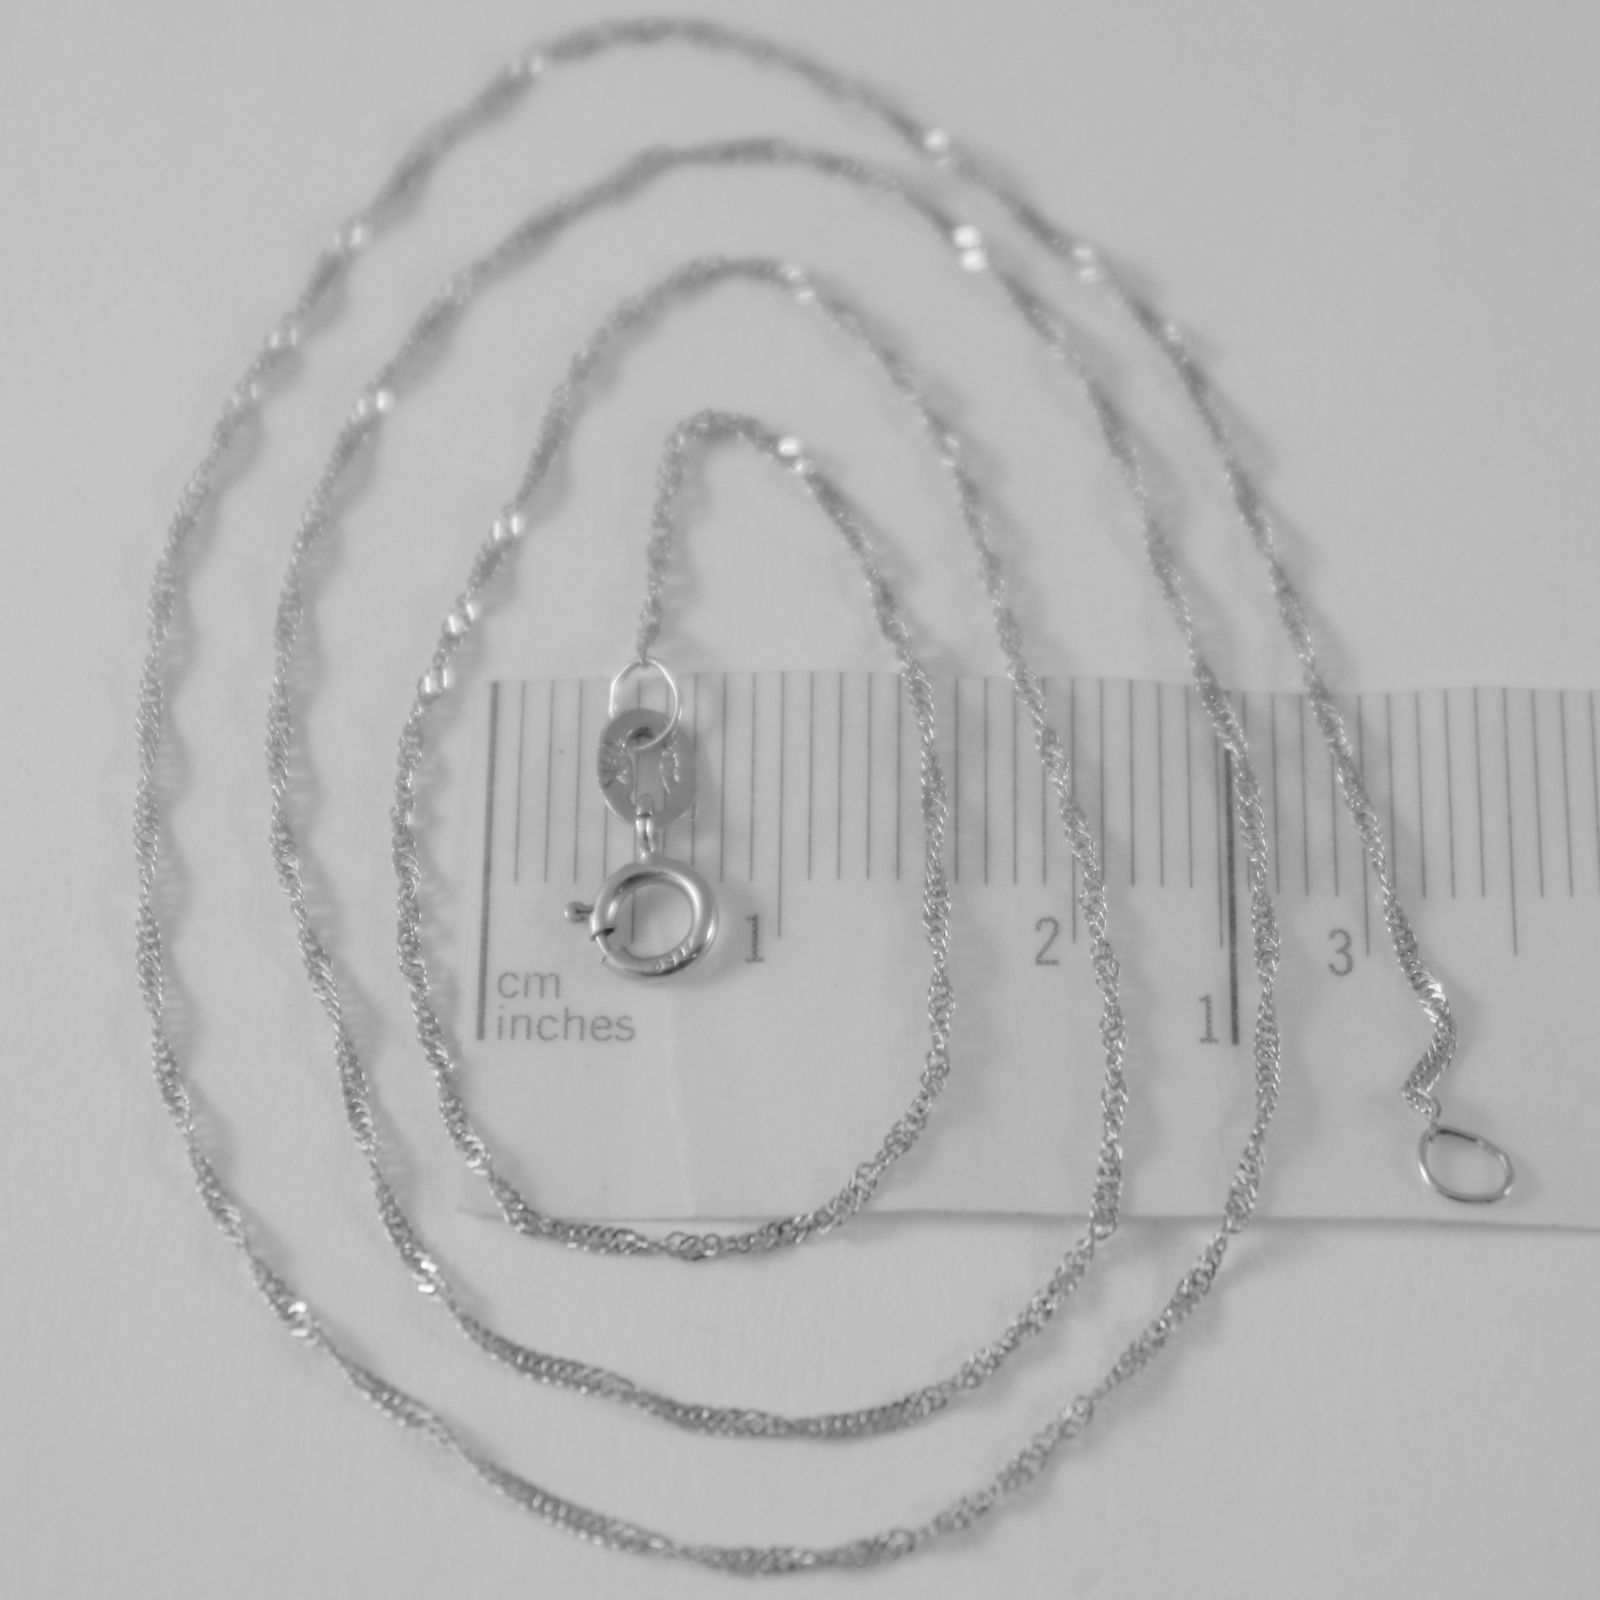 SOLID 18K WHITE GOLD SINGAPORE BRAID ROPE CHAIN 20 INCHES, 1 MM, MADE IN ITALY